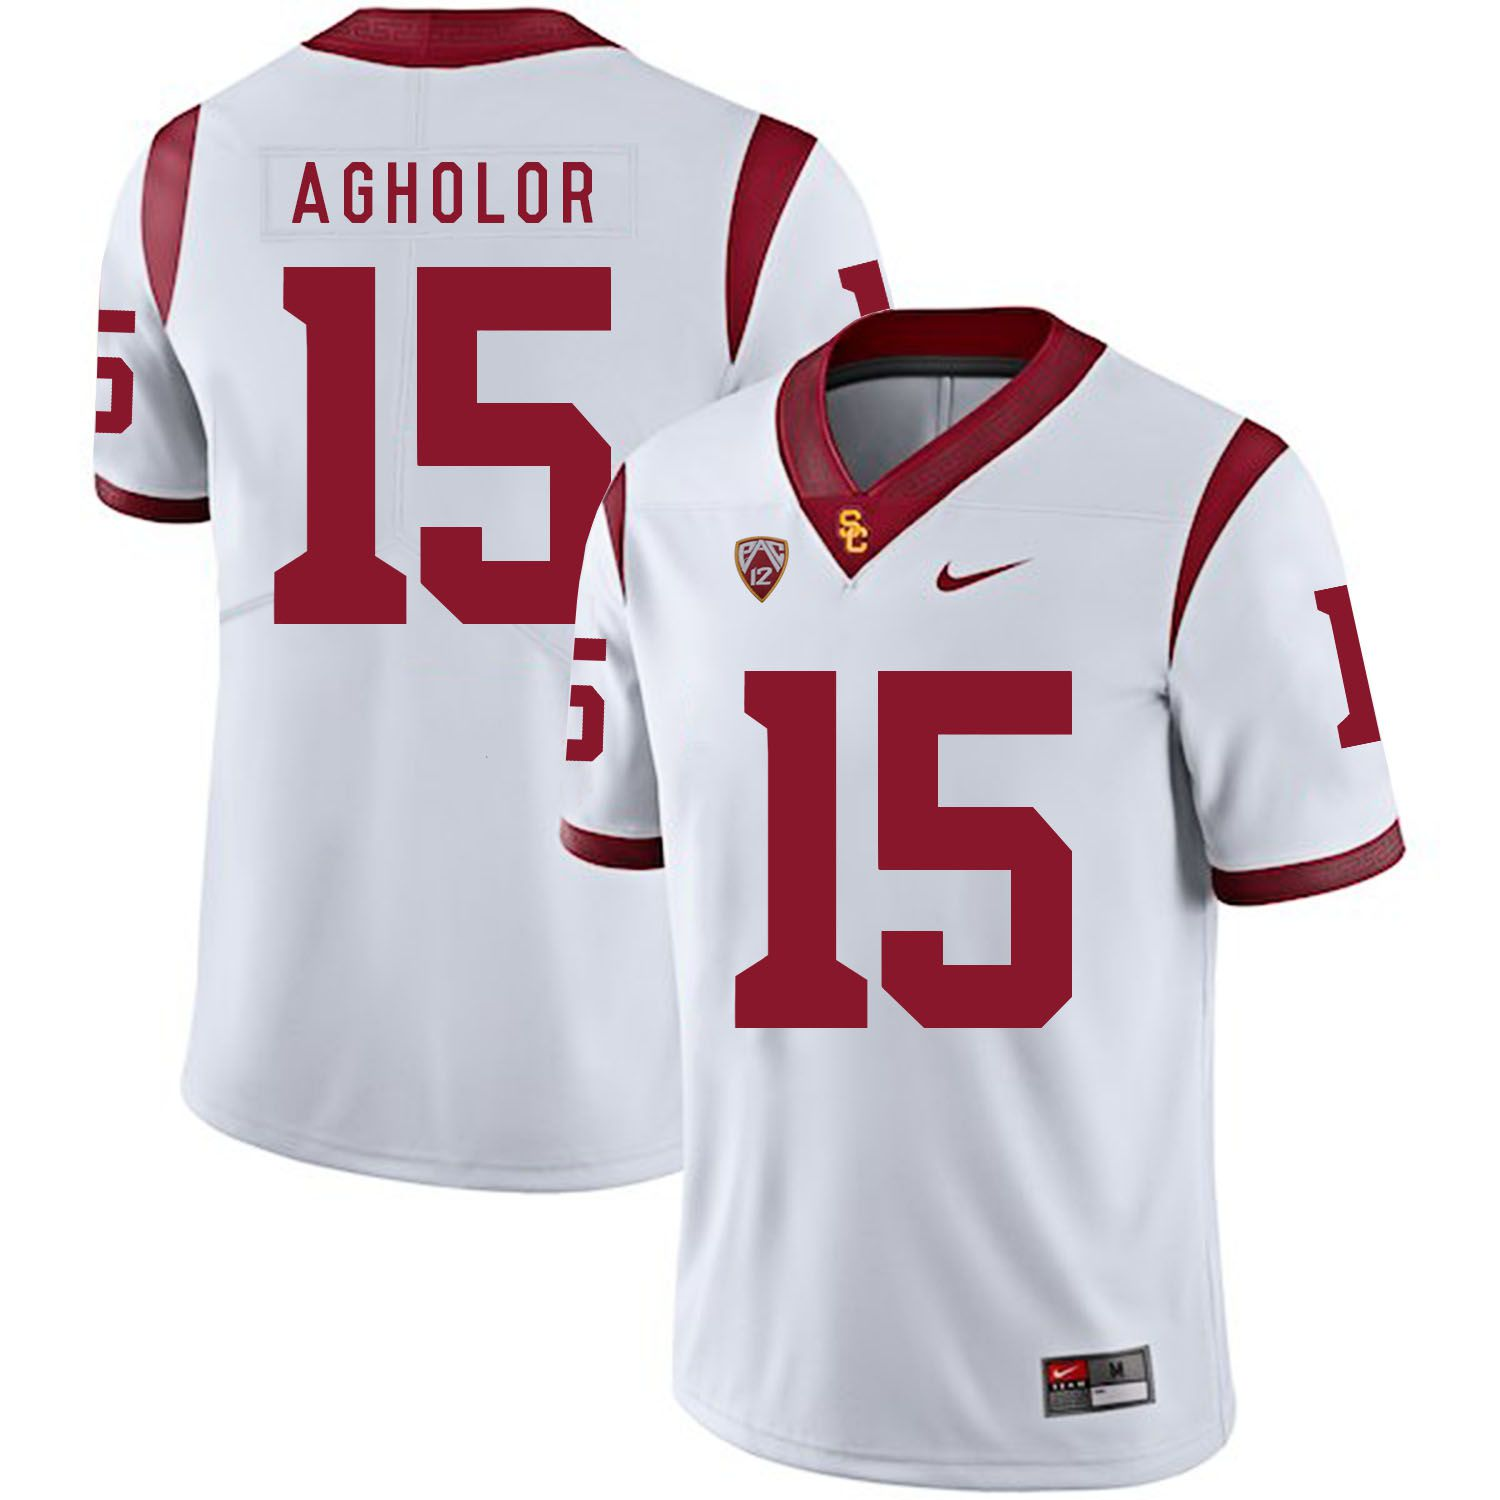 Men USC Trojans 15 Agholor White Customized NCAA Jerseys